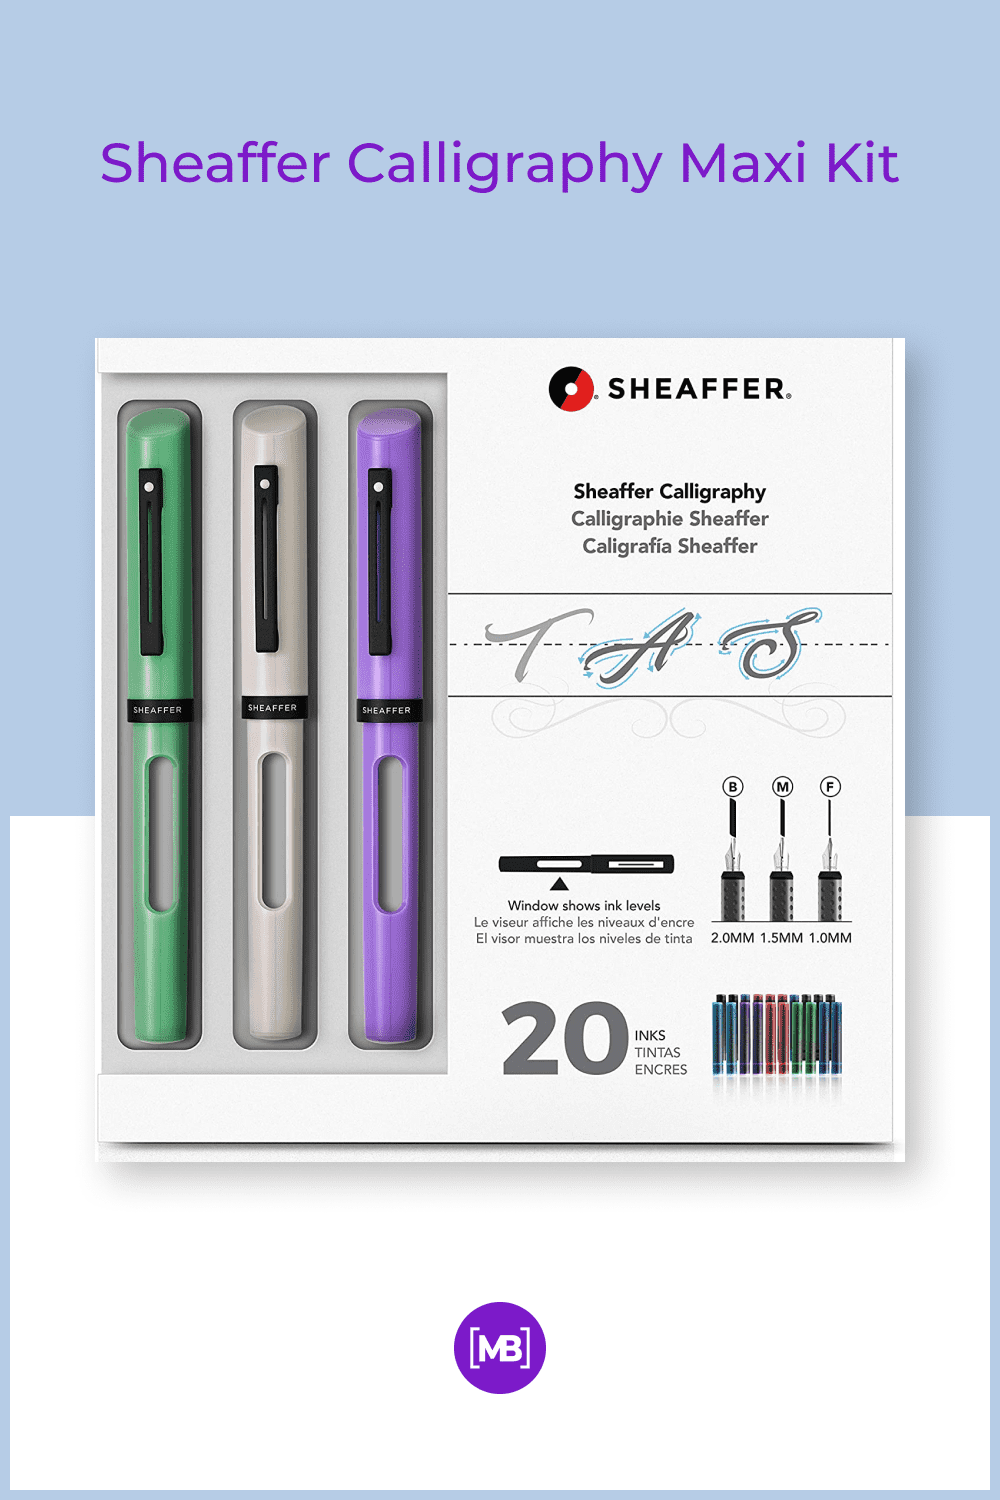 Three modern calligraphy pens with glossy resin finishes in neo-mint, white, and lavender.